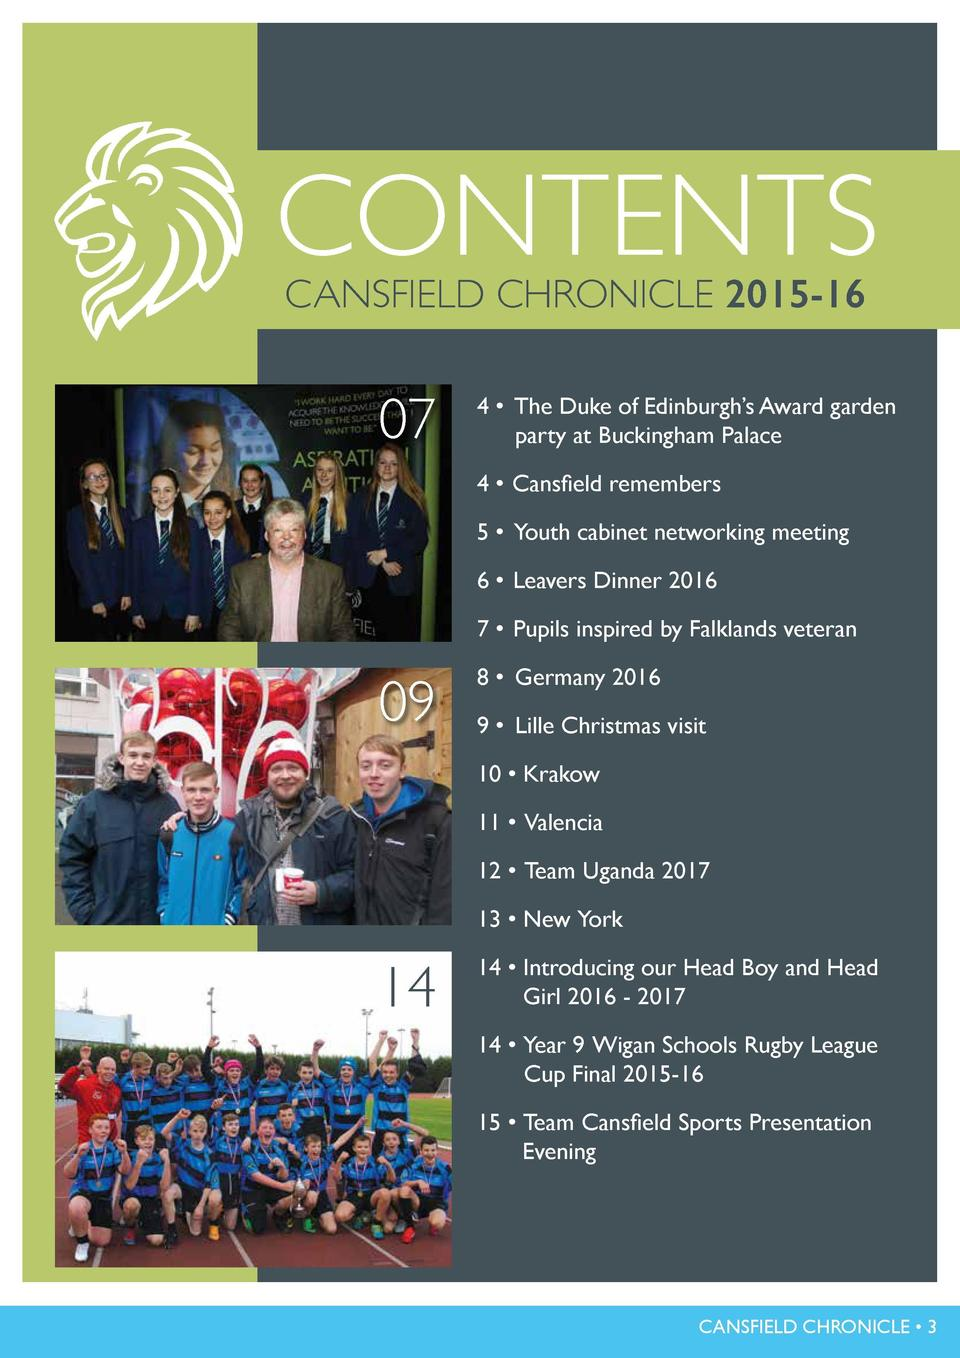 WELCOME TO THE FIRST EDITION OF THE  CHRONICLE  CONTENTS CANSFIELD CHRONICLE 2015-16  DEVELOPING POTENTIAL     CELEBRATING...